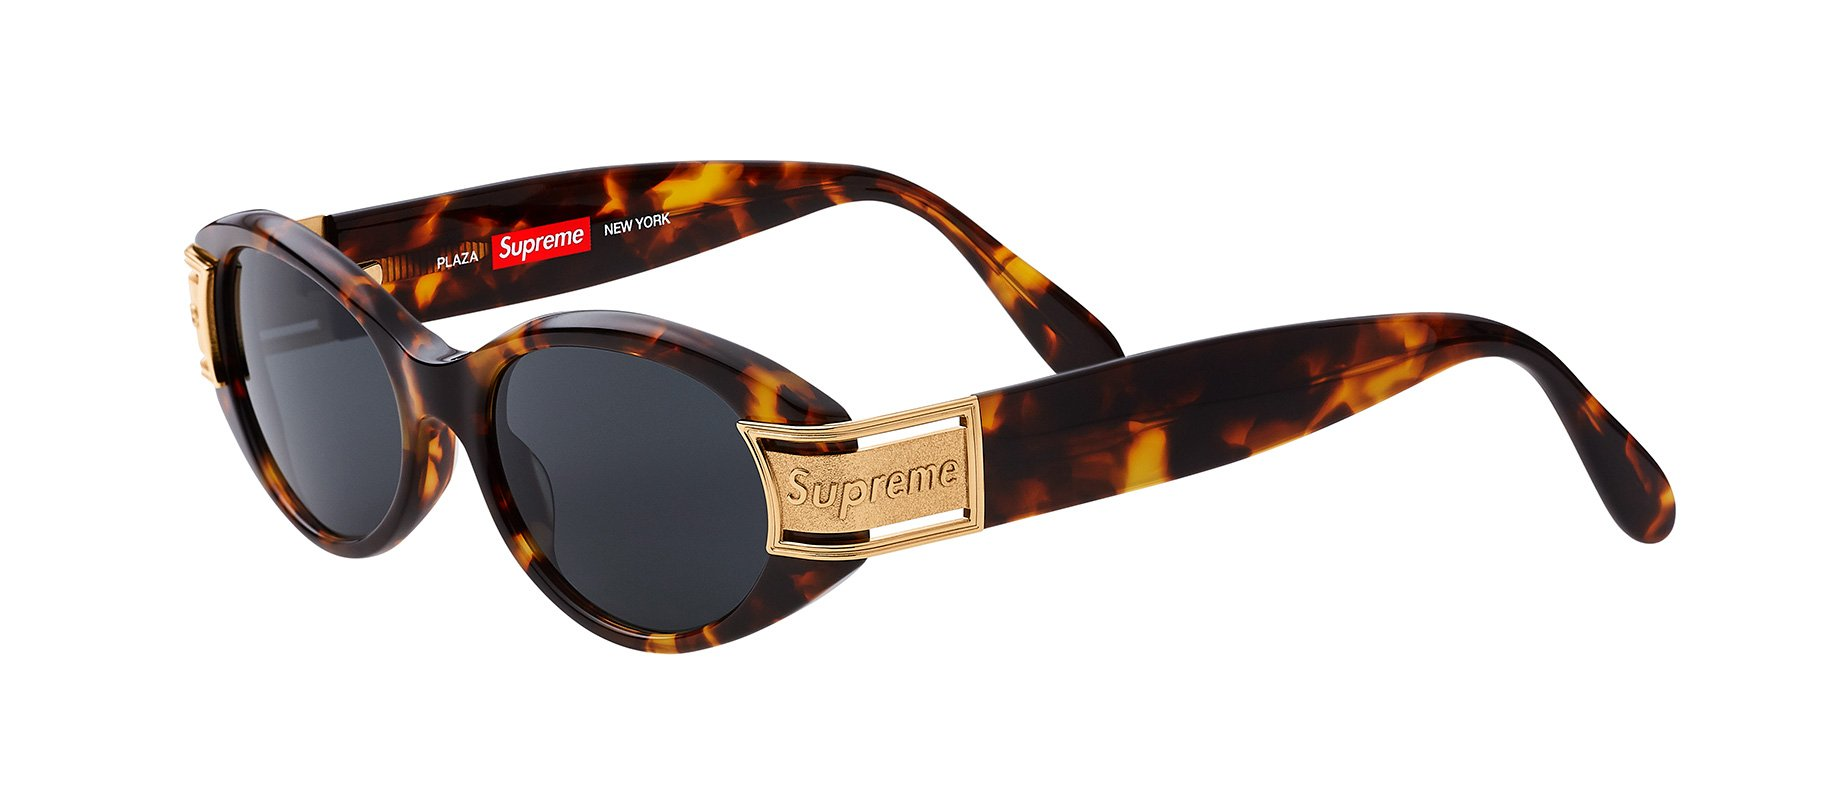 supreme-sunglasses-18ss-release-20180519-week13